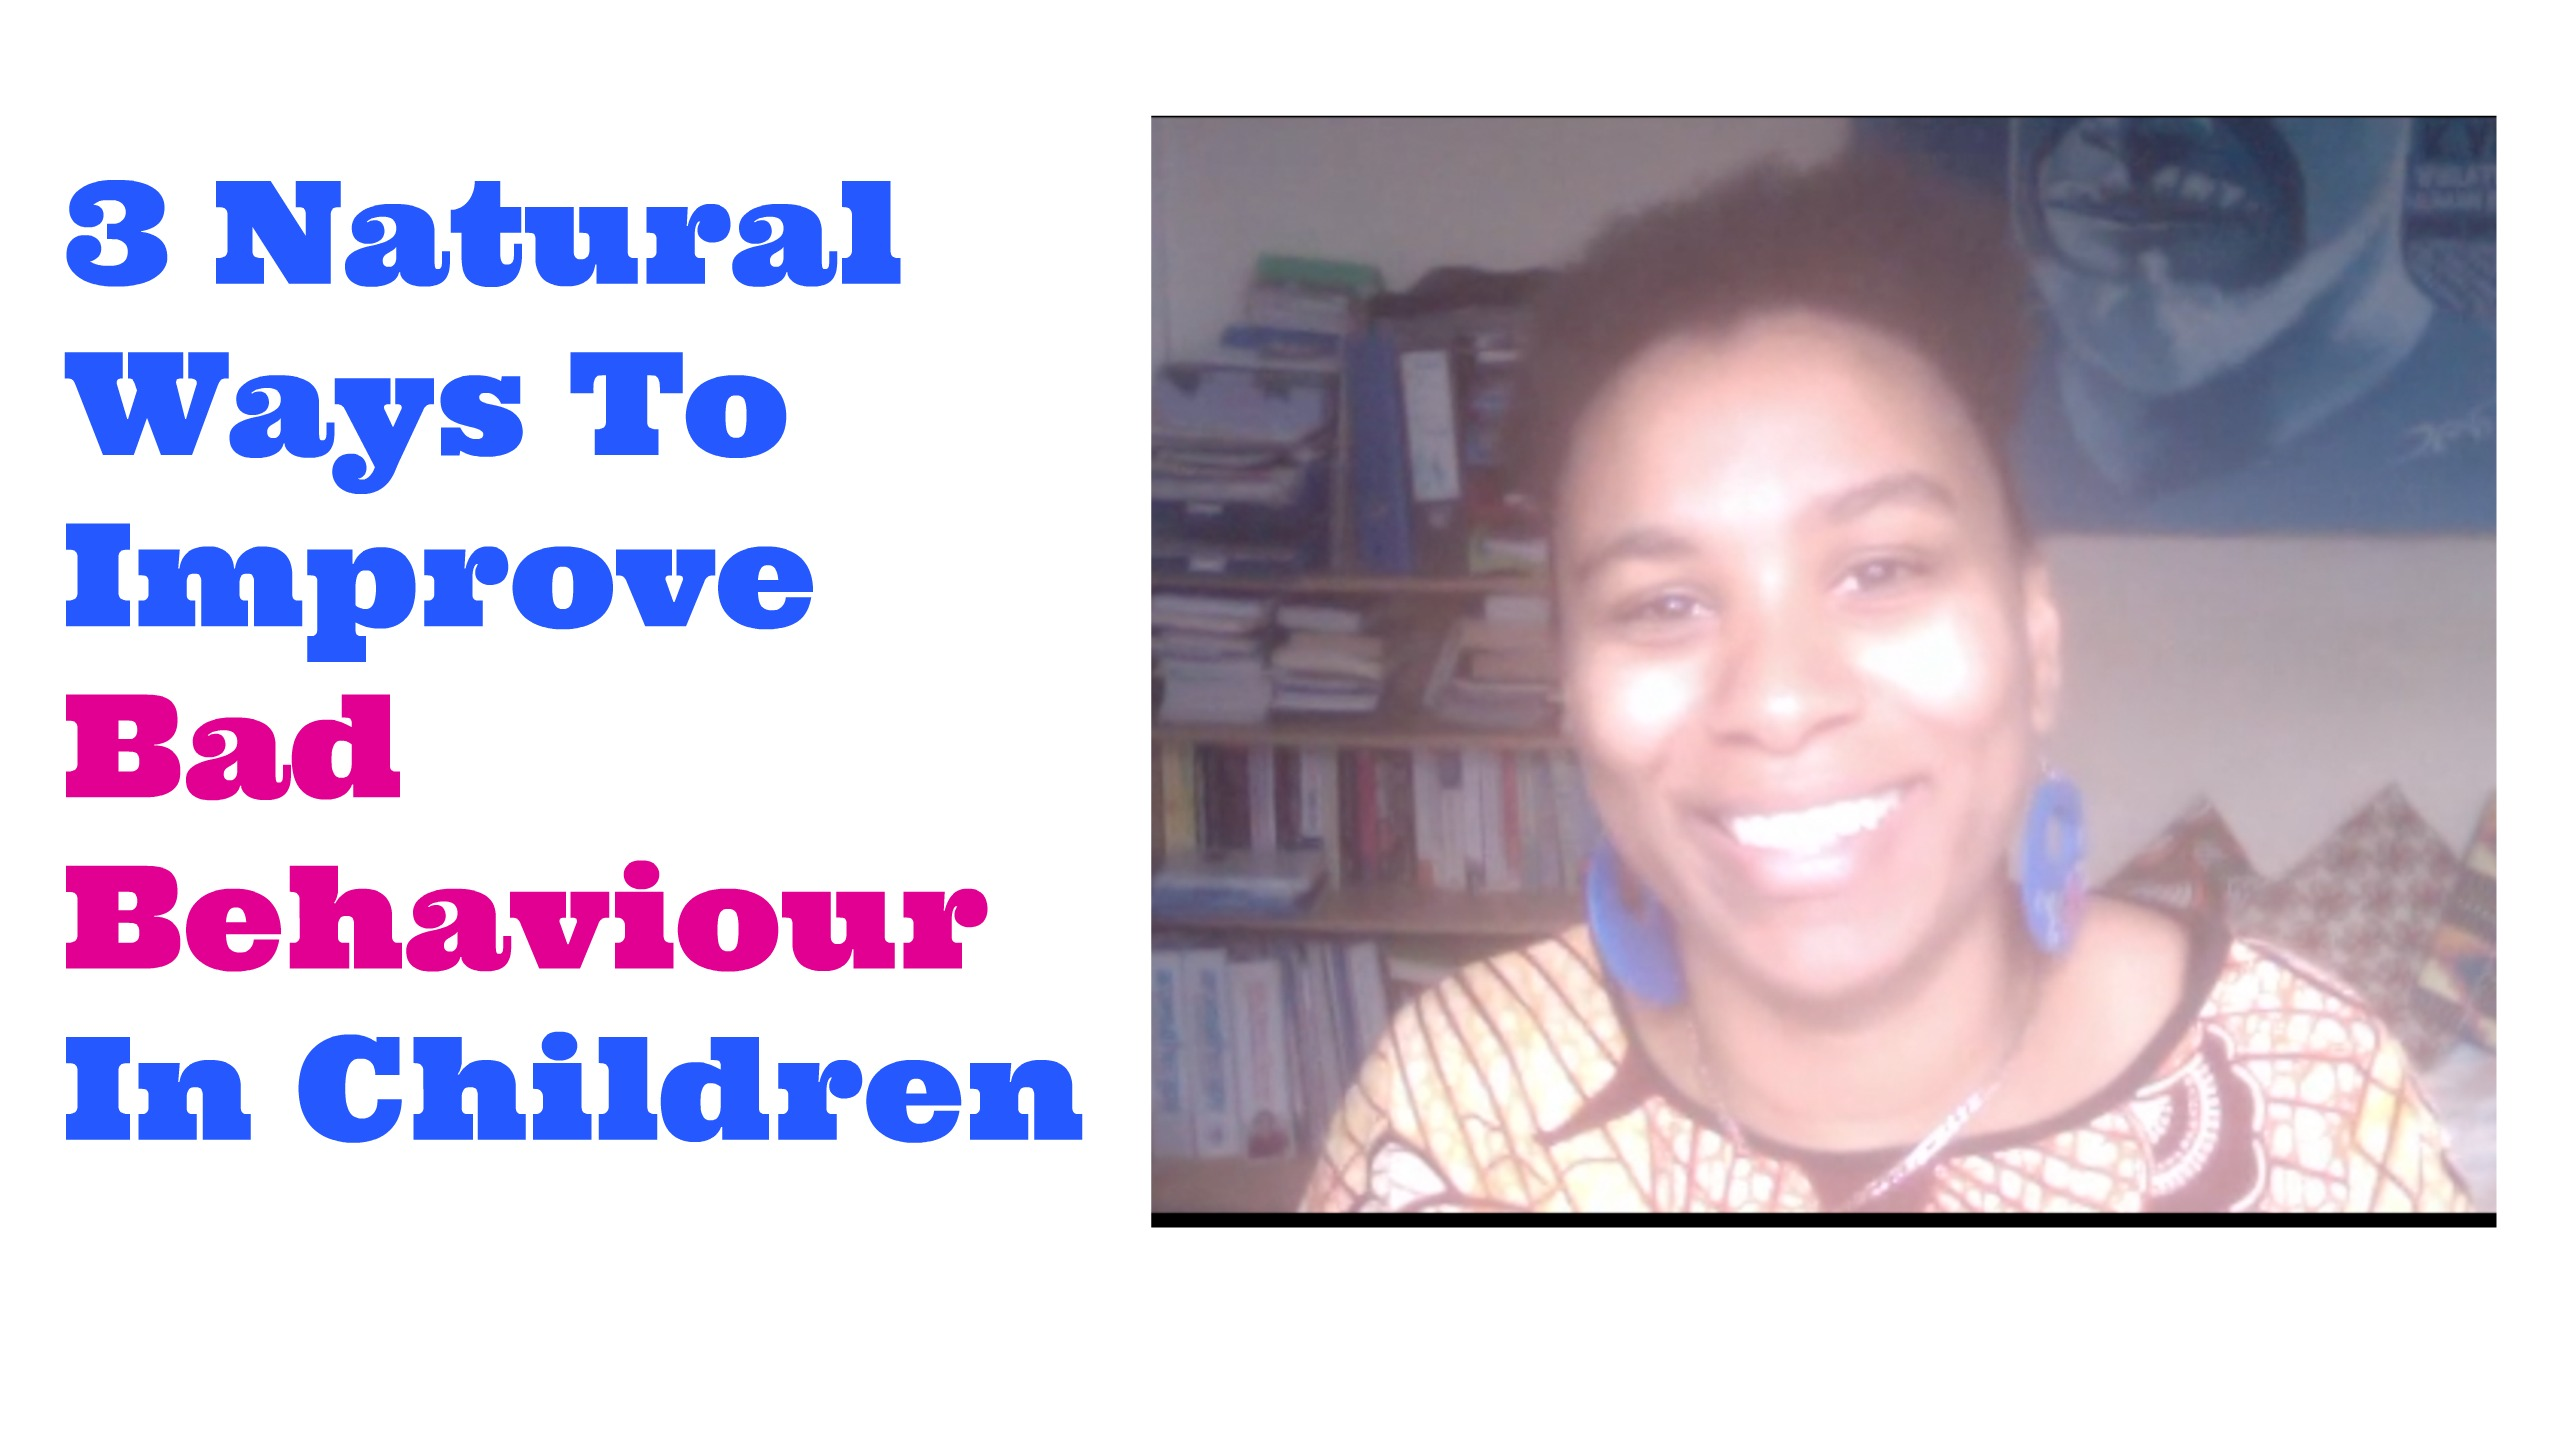 childrenbehaviourvid